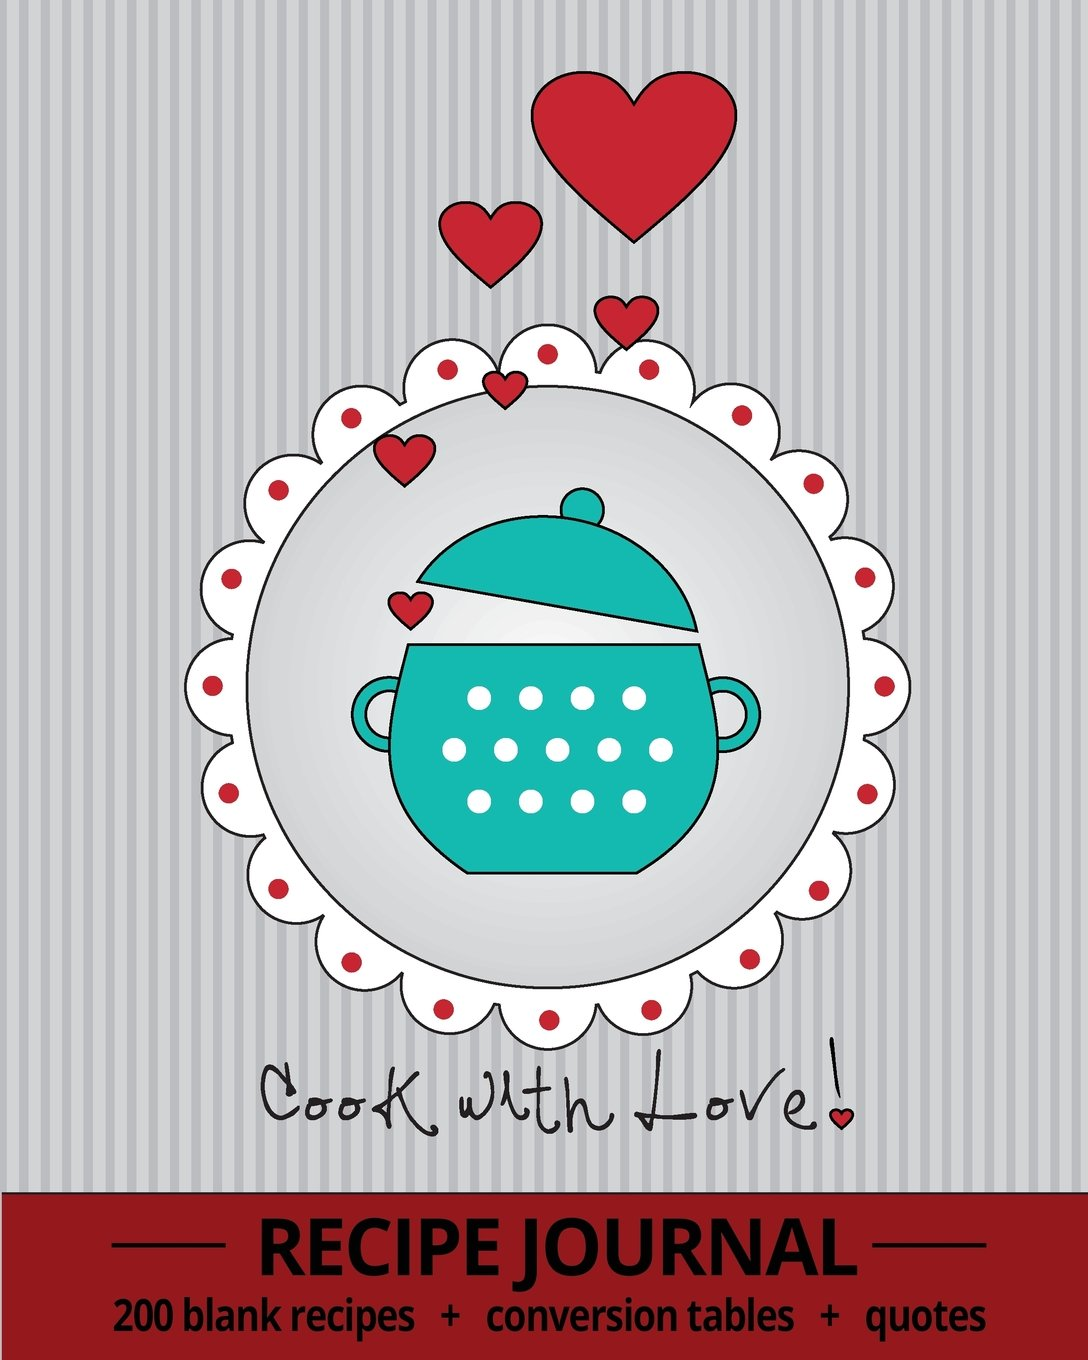 Cook With Love! Recipe Journal With 200 Blank Recipe Pages